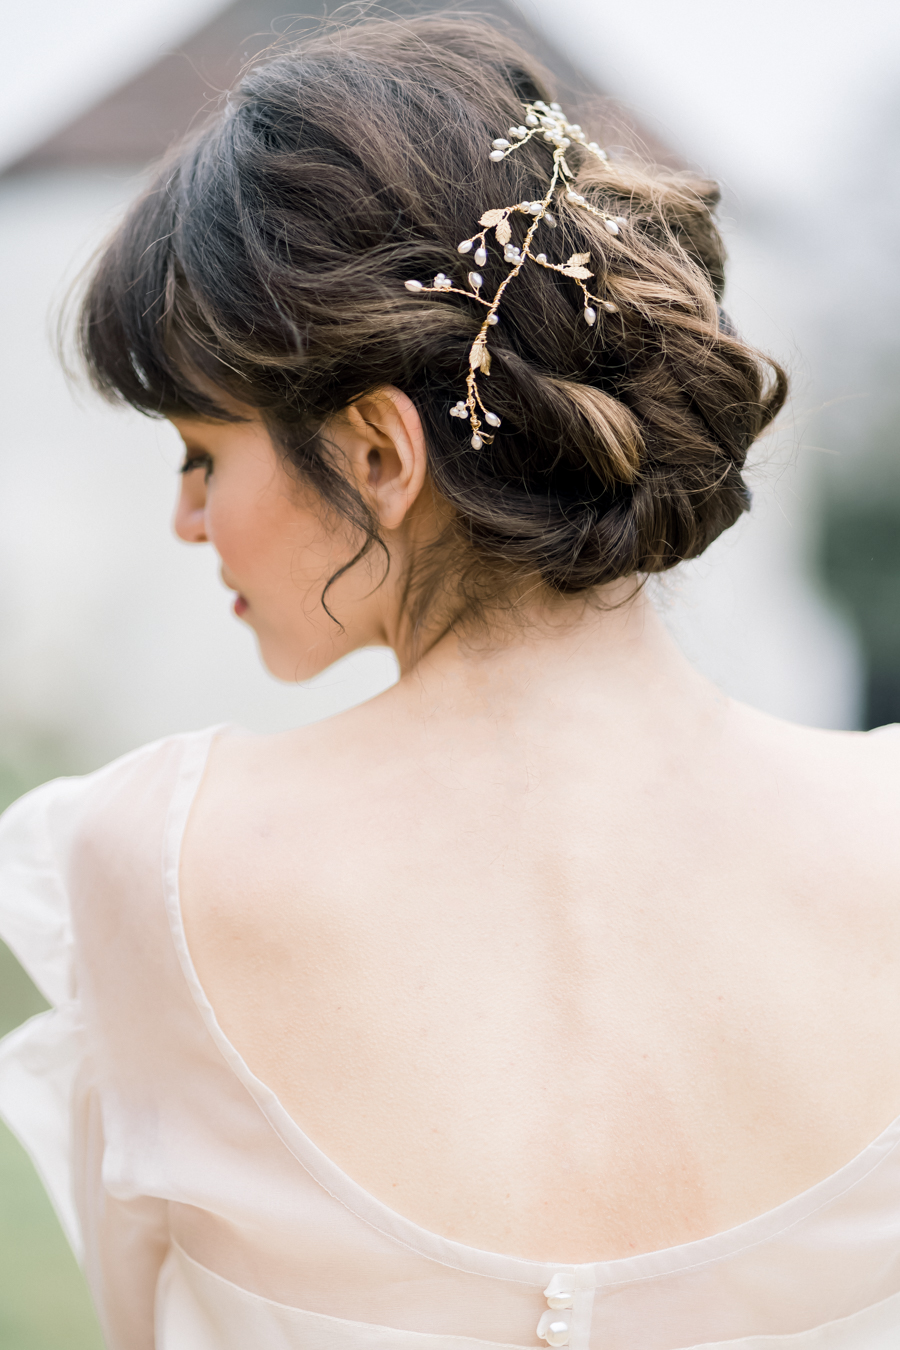 Spring blossom wedding style inspiration and ideas with Chloe Ely Photography at Barton Court (10)